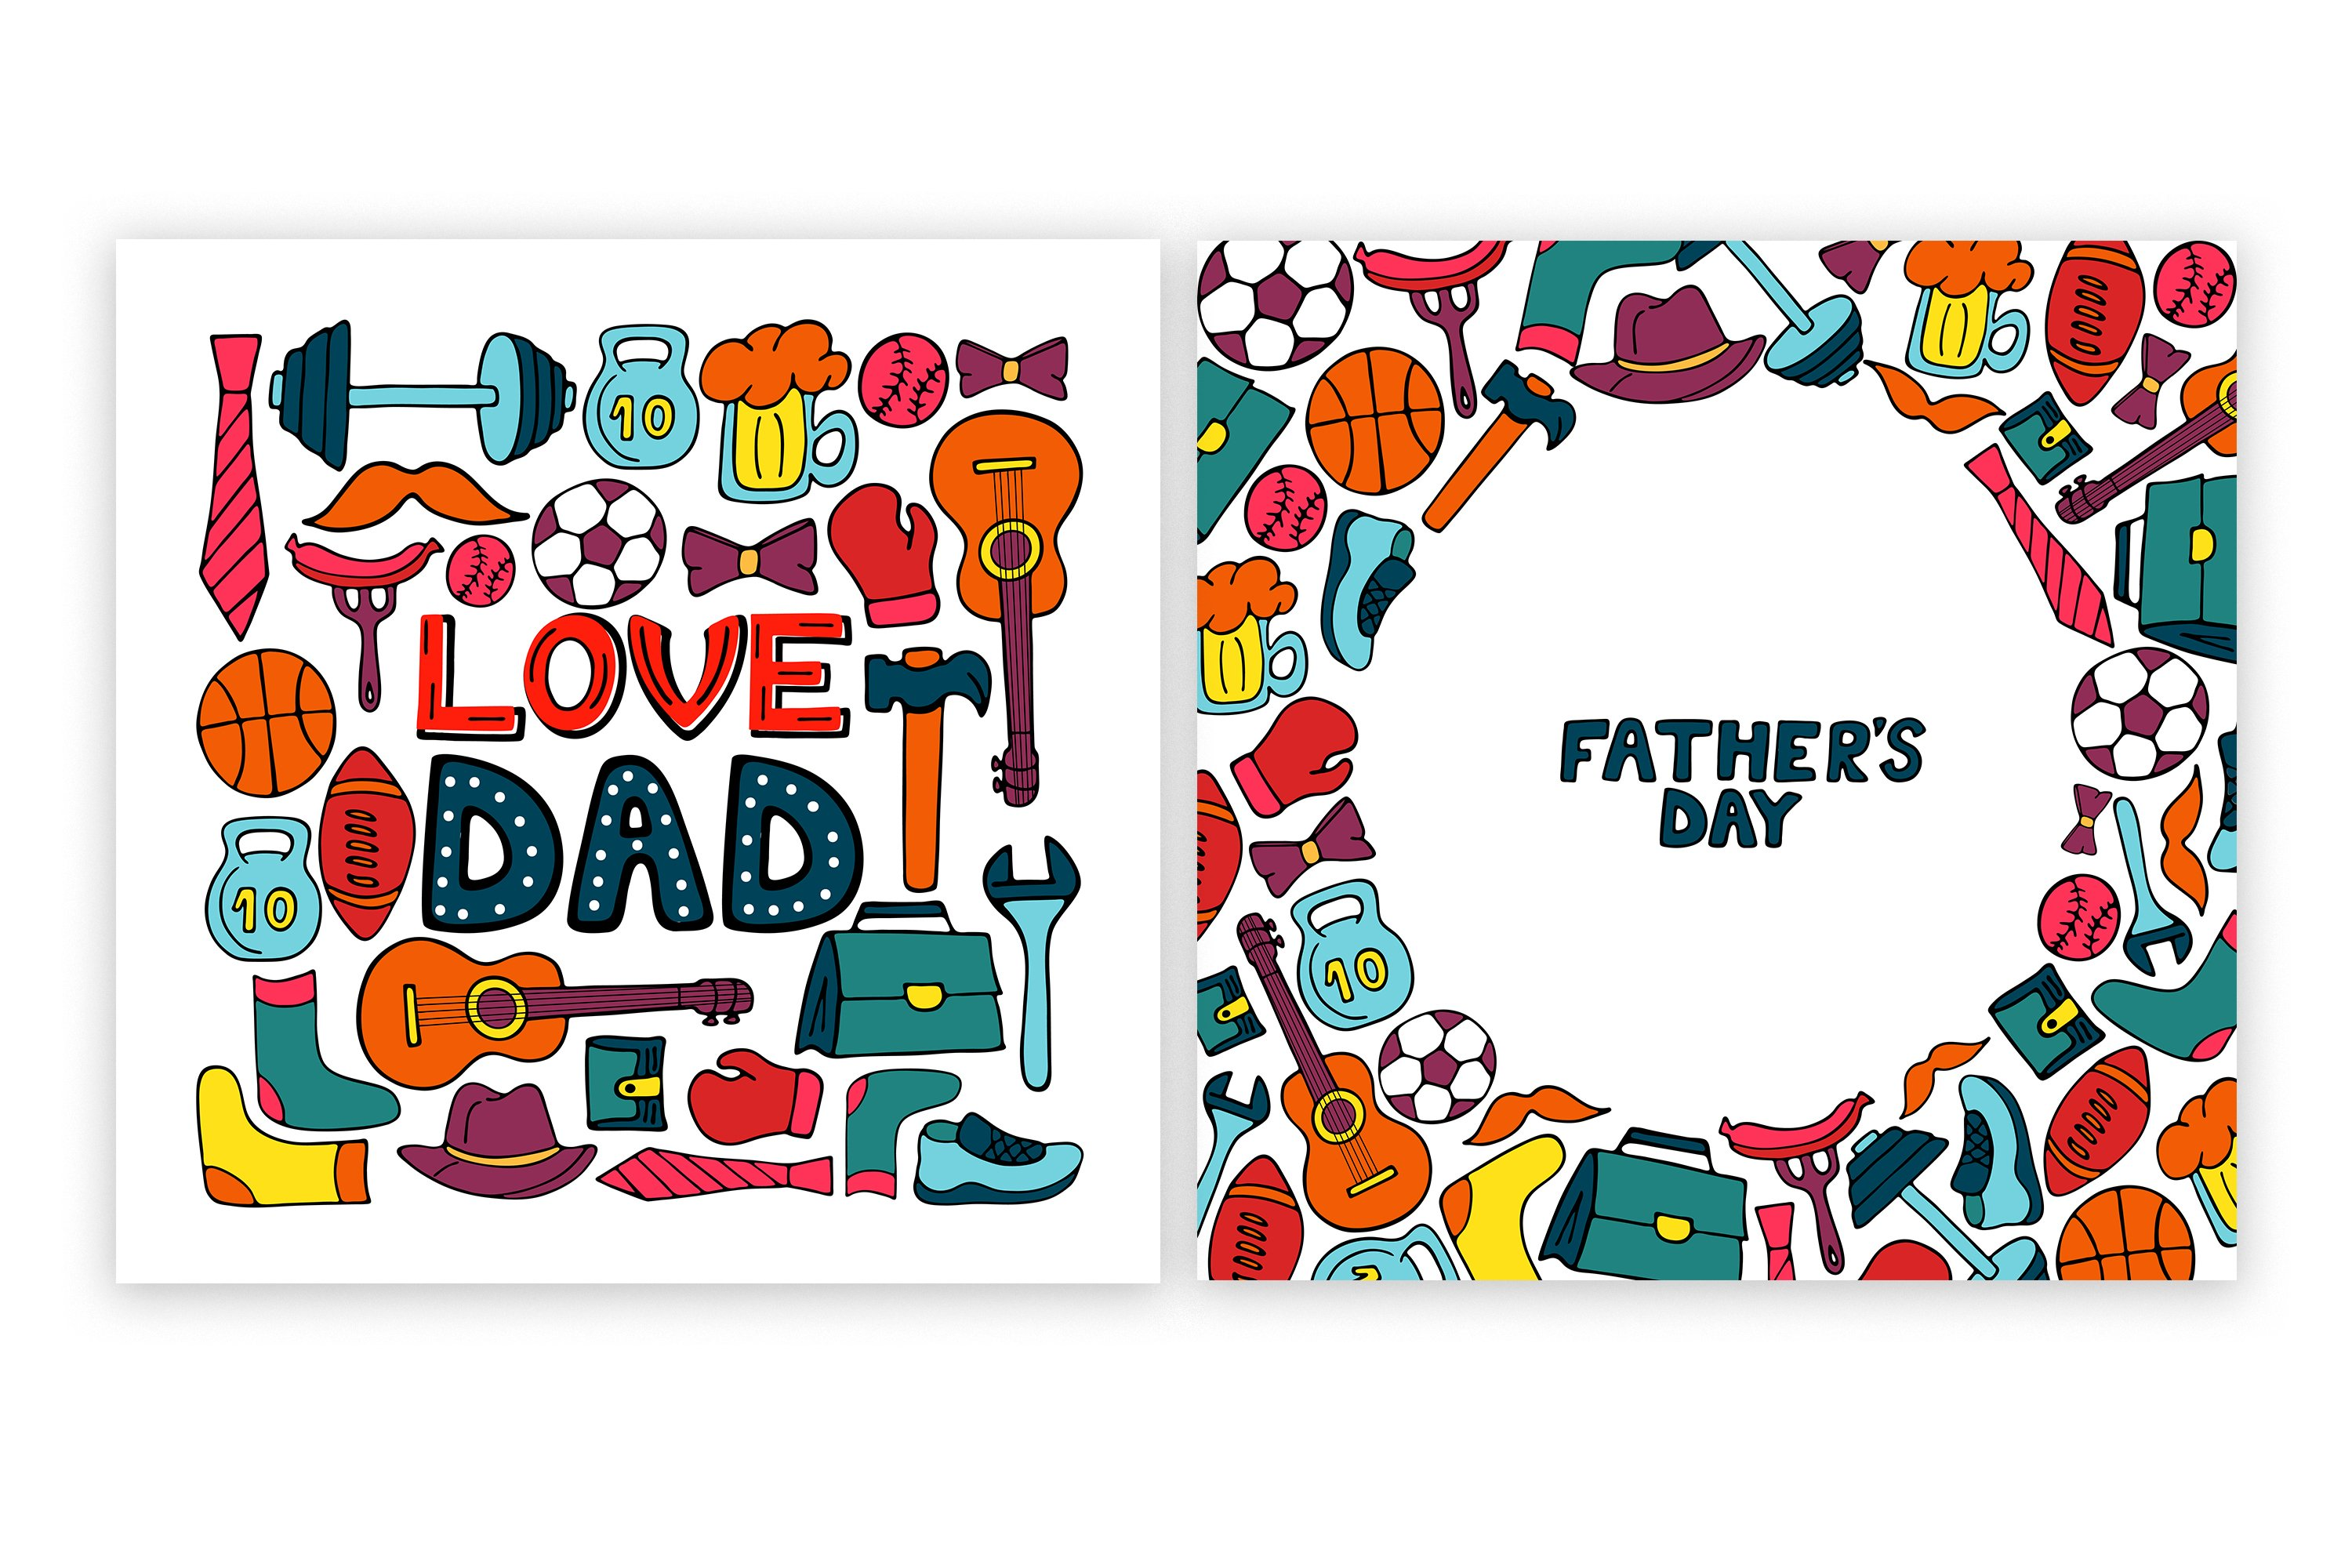 Happy Father's Day. Greeting cards and seamless pattern example image 4